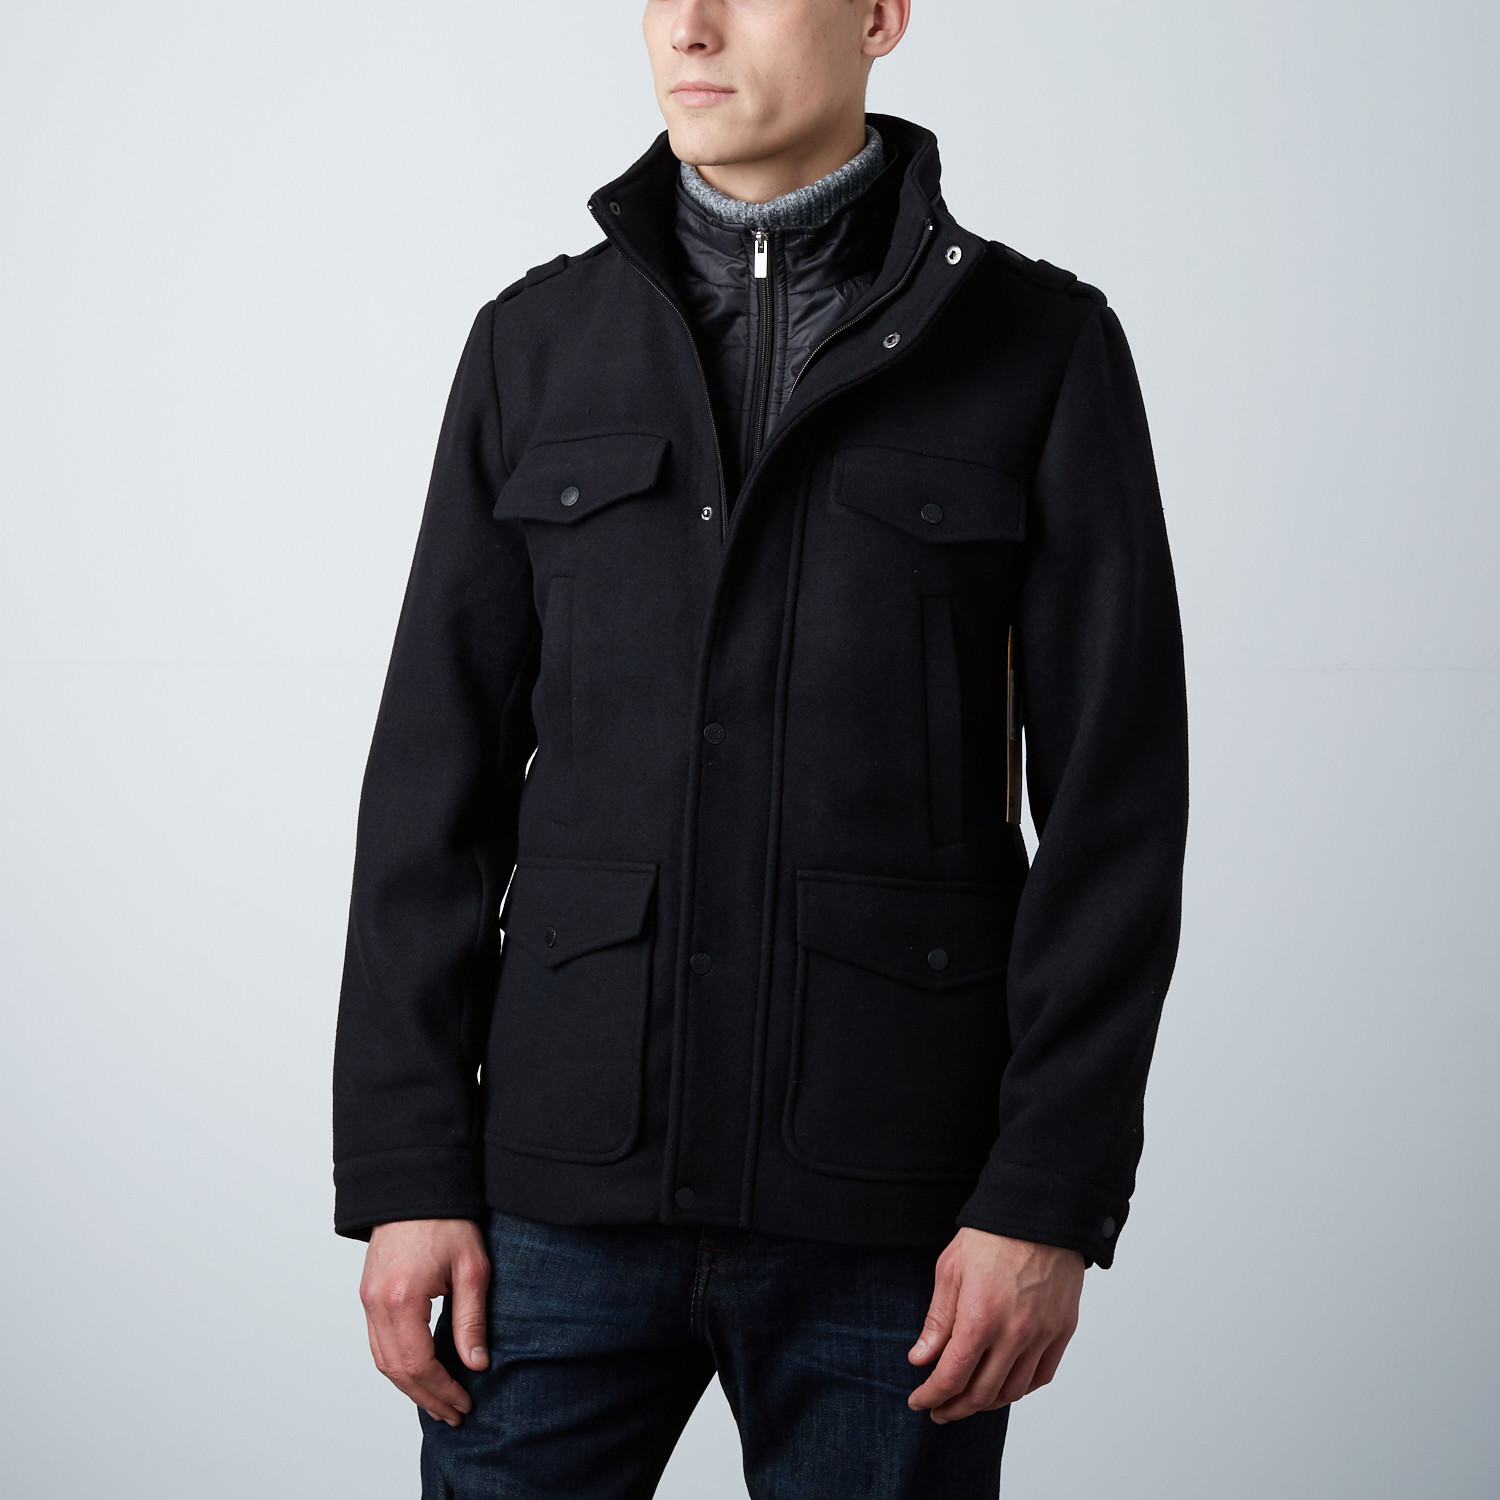 db5fed48 Huber Military Peacoat // Black (XL) - Outerwear Clearance - Touch ...